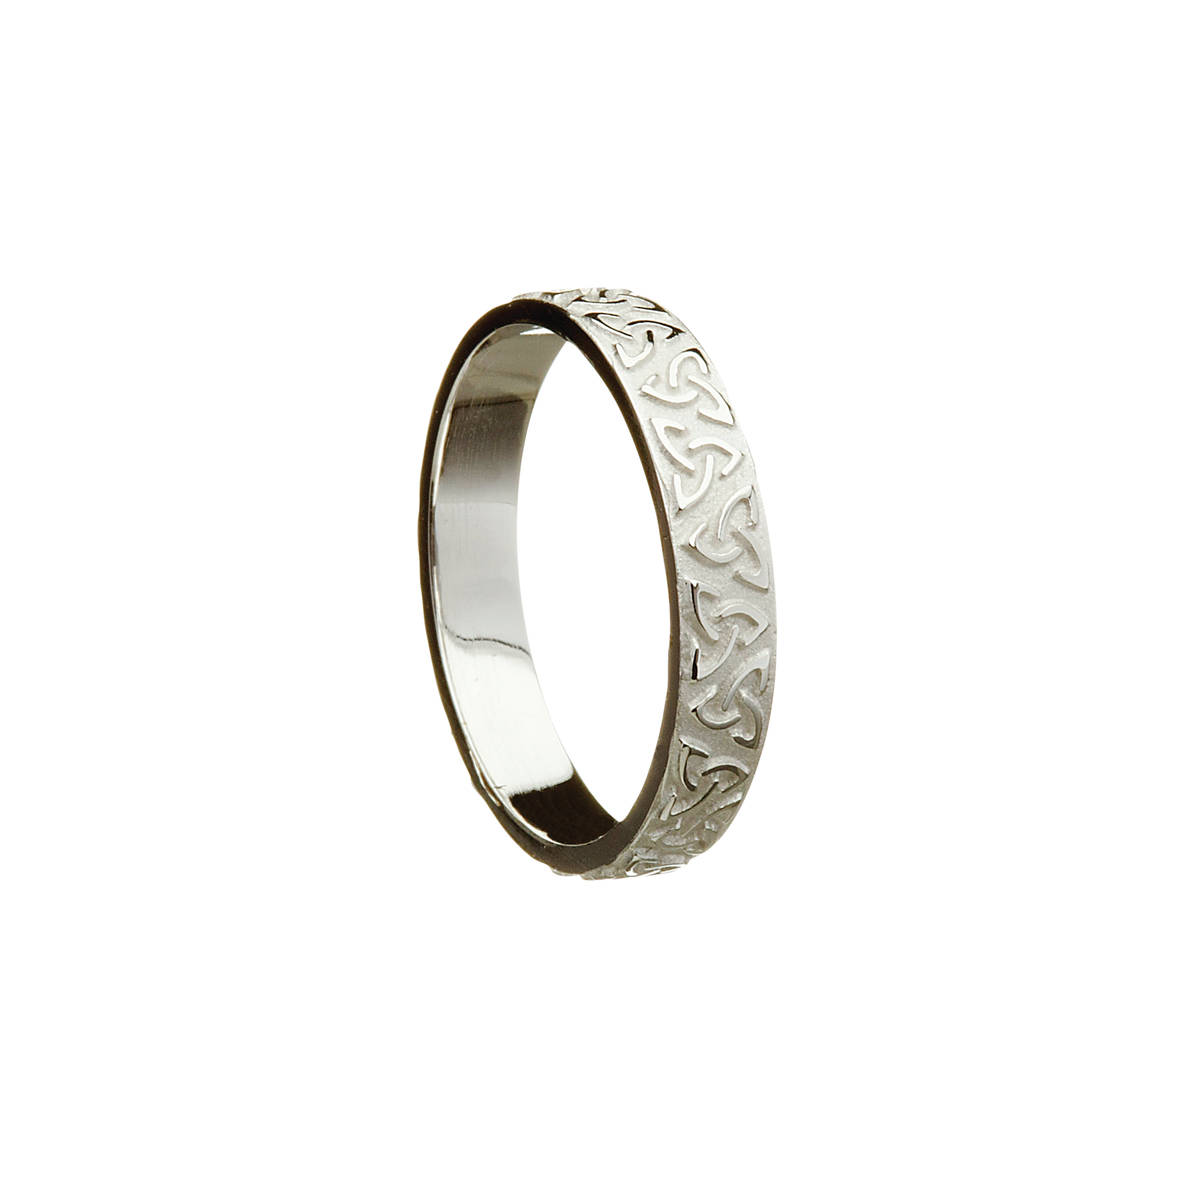 14 carat white gold lady's Celtic raised trinity knot 3.9mm wide approx. ring.Avery practical and distinctive ring.This ring can be ordered in yellow or rose gold by requesting it in the comment box on the checkout page.